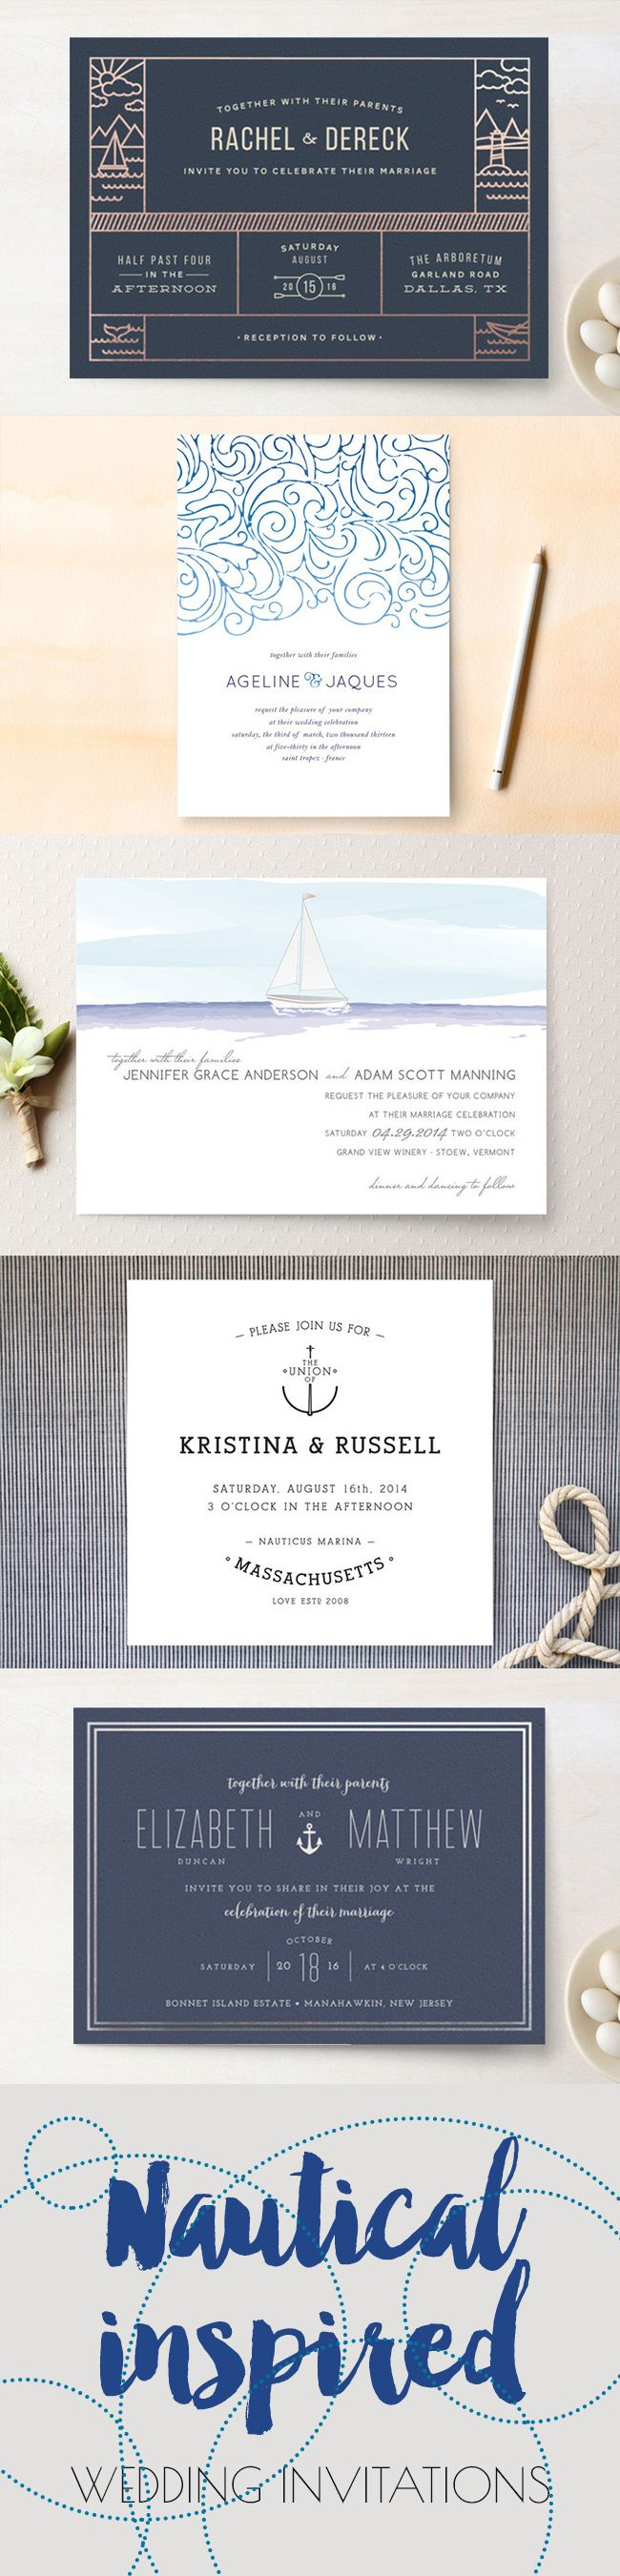 118 Best Nautical Wedding Images On Pinterest Beach Weddings